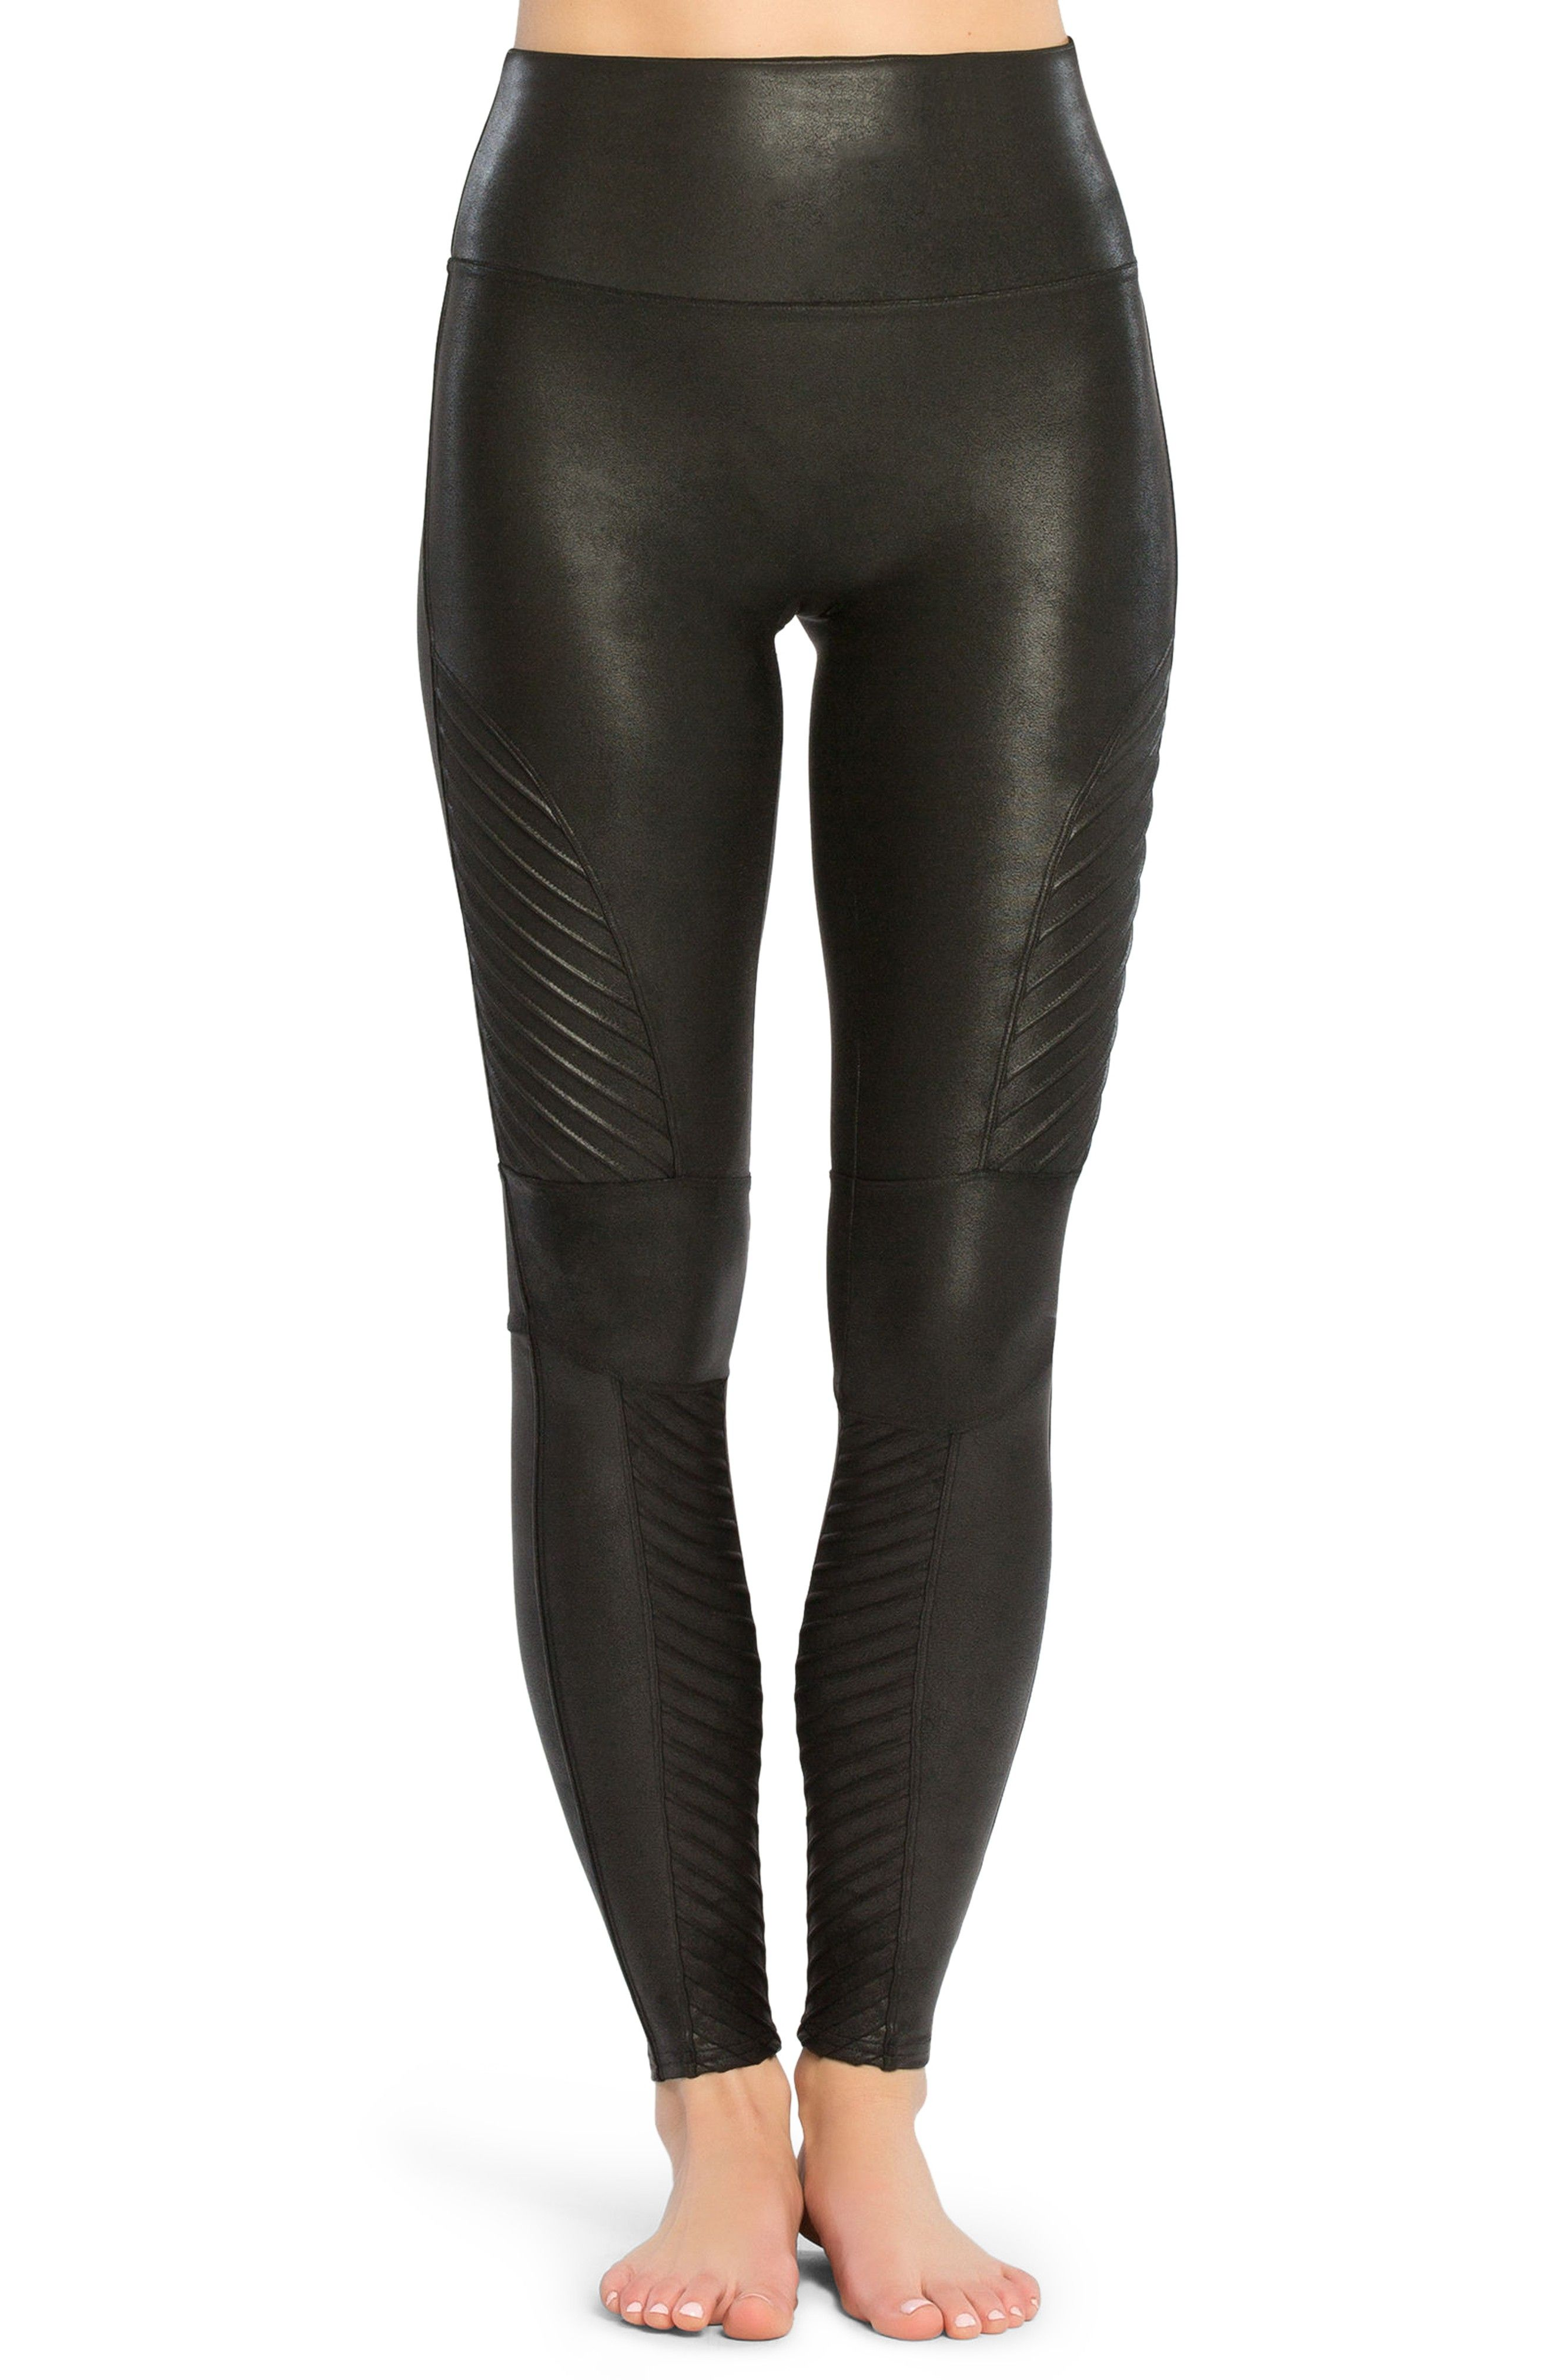 435af785 SPANX Faux Leather Moto Leggings | wear | Spanx faux leather ...